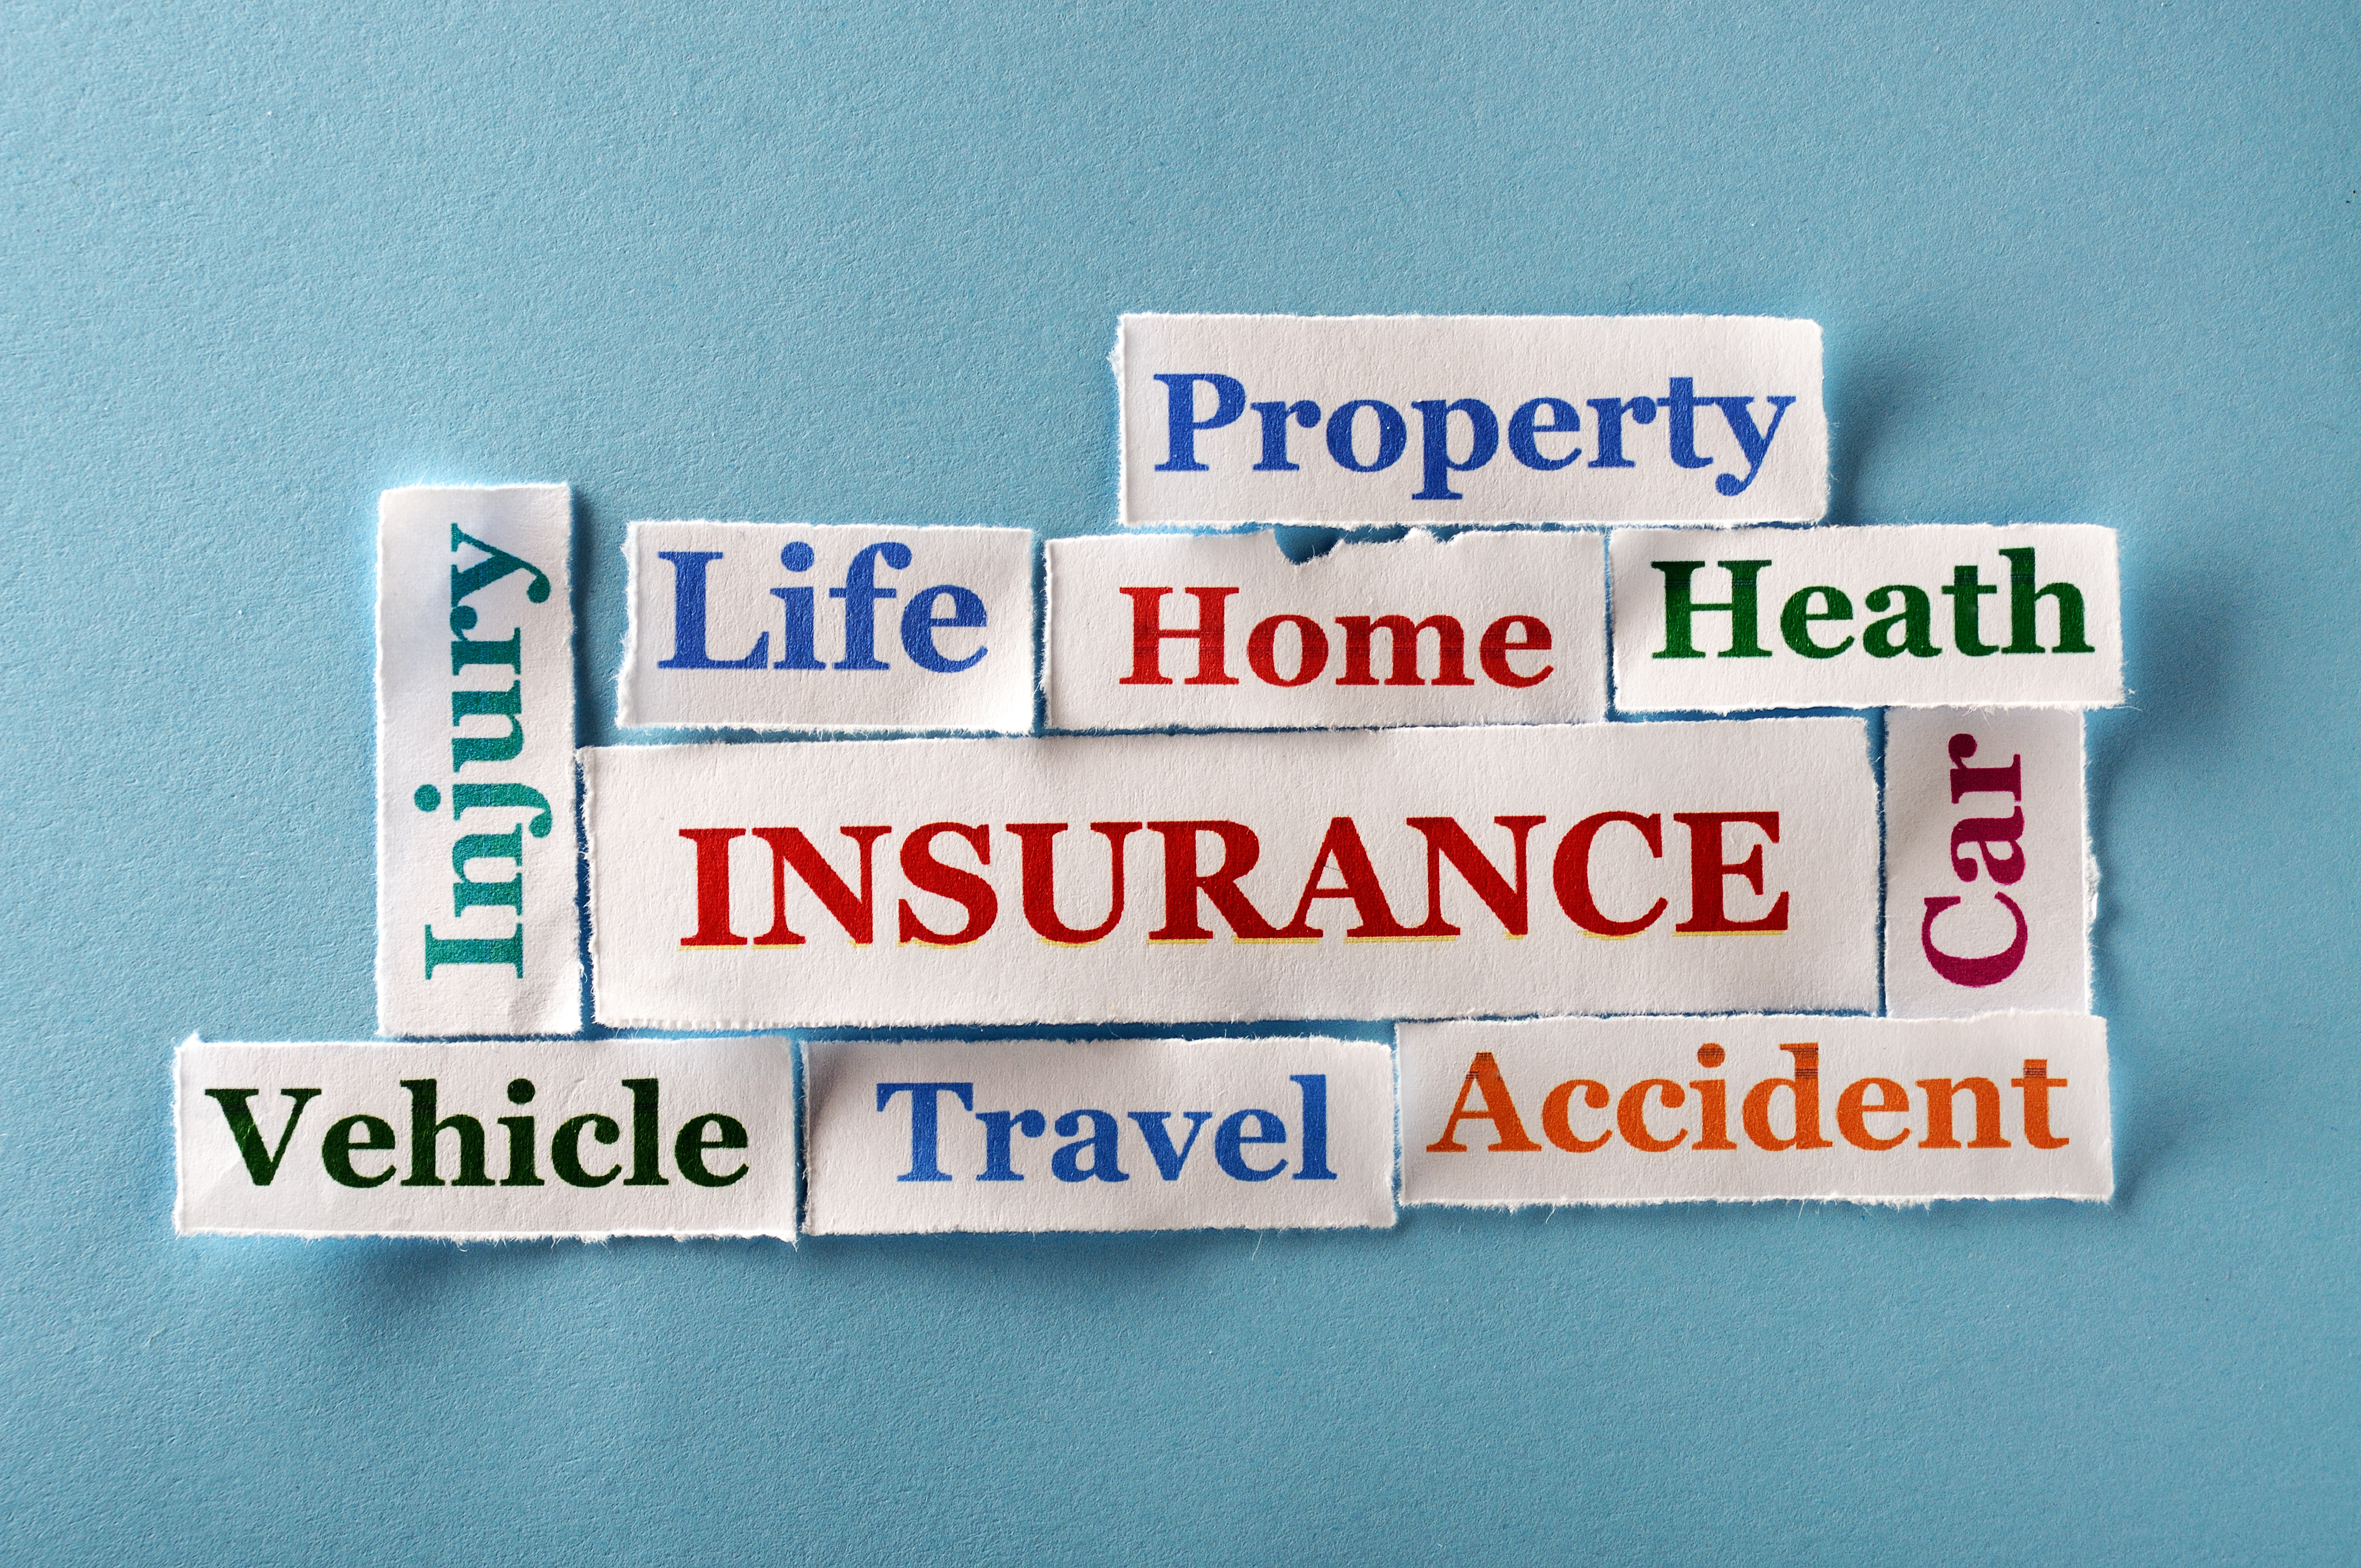 Business Insurance Policies and Requirements